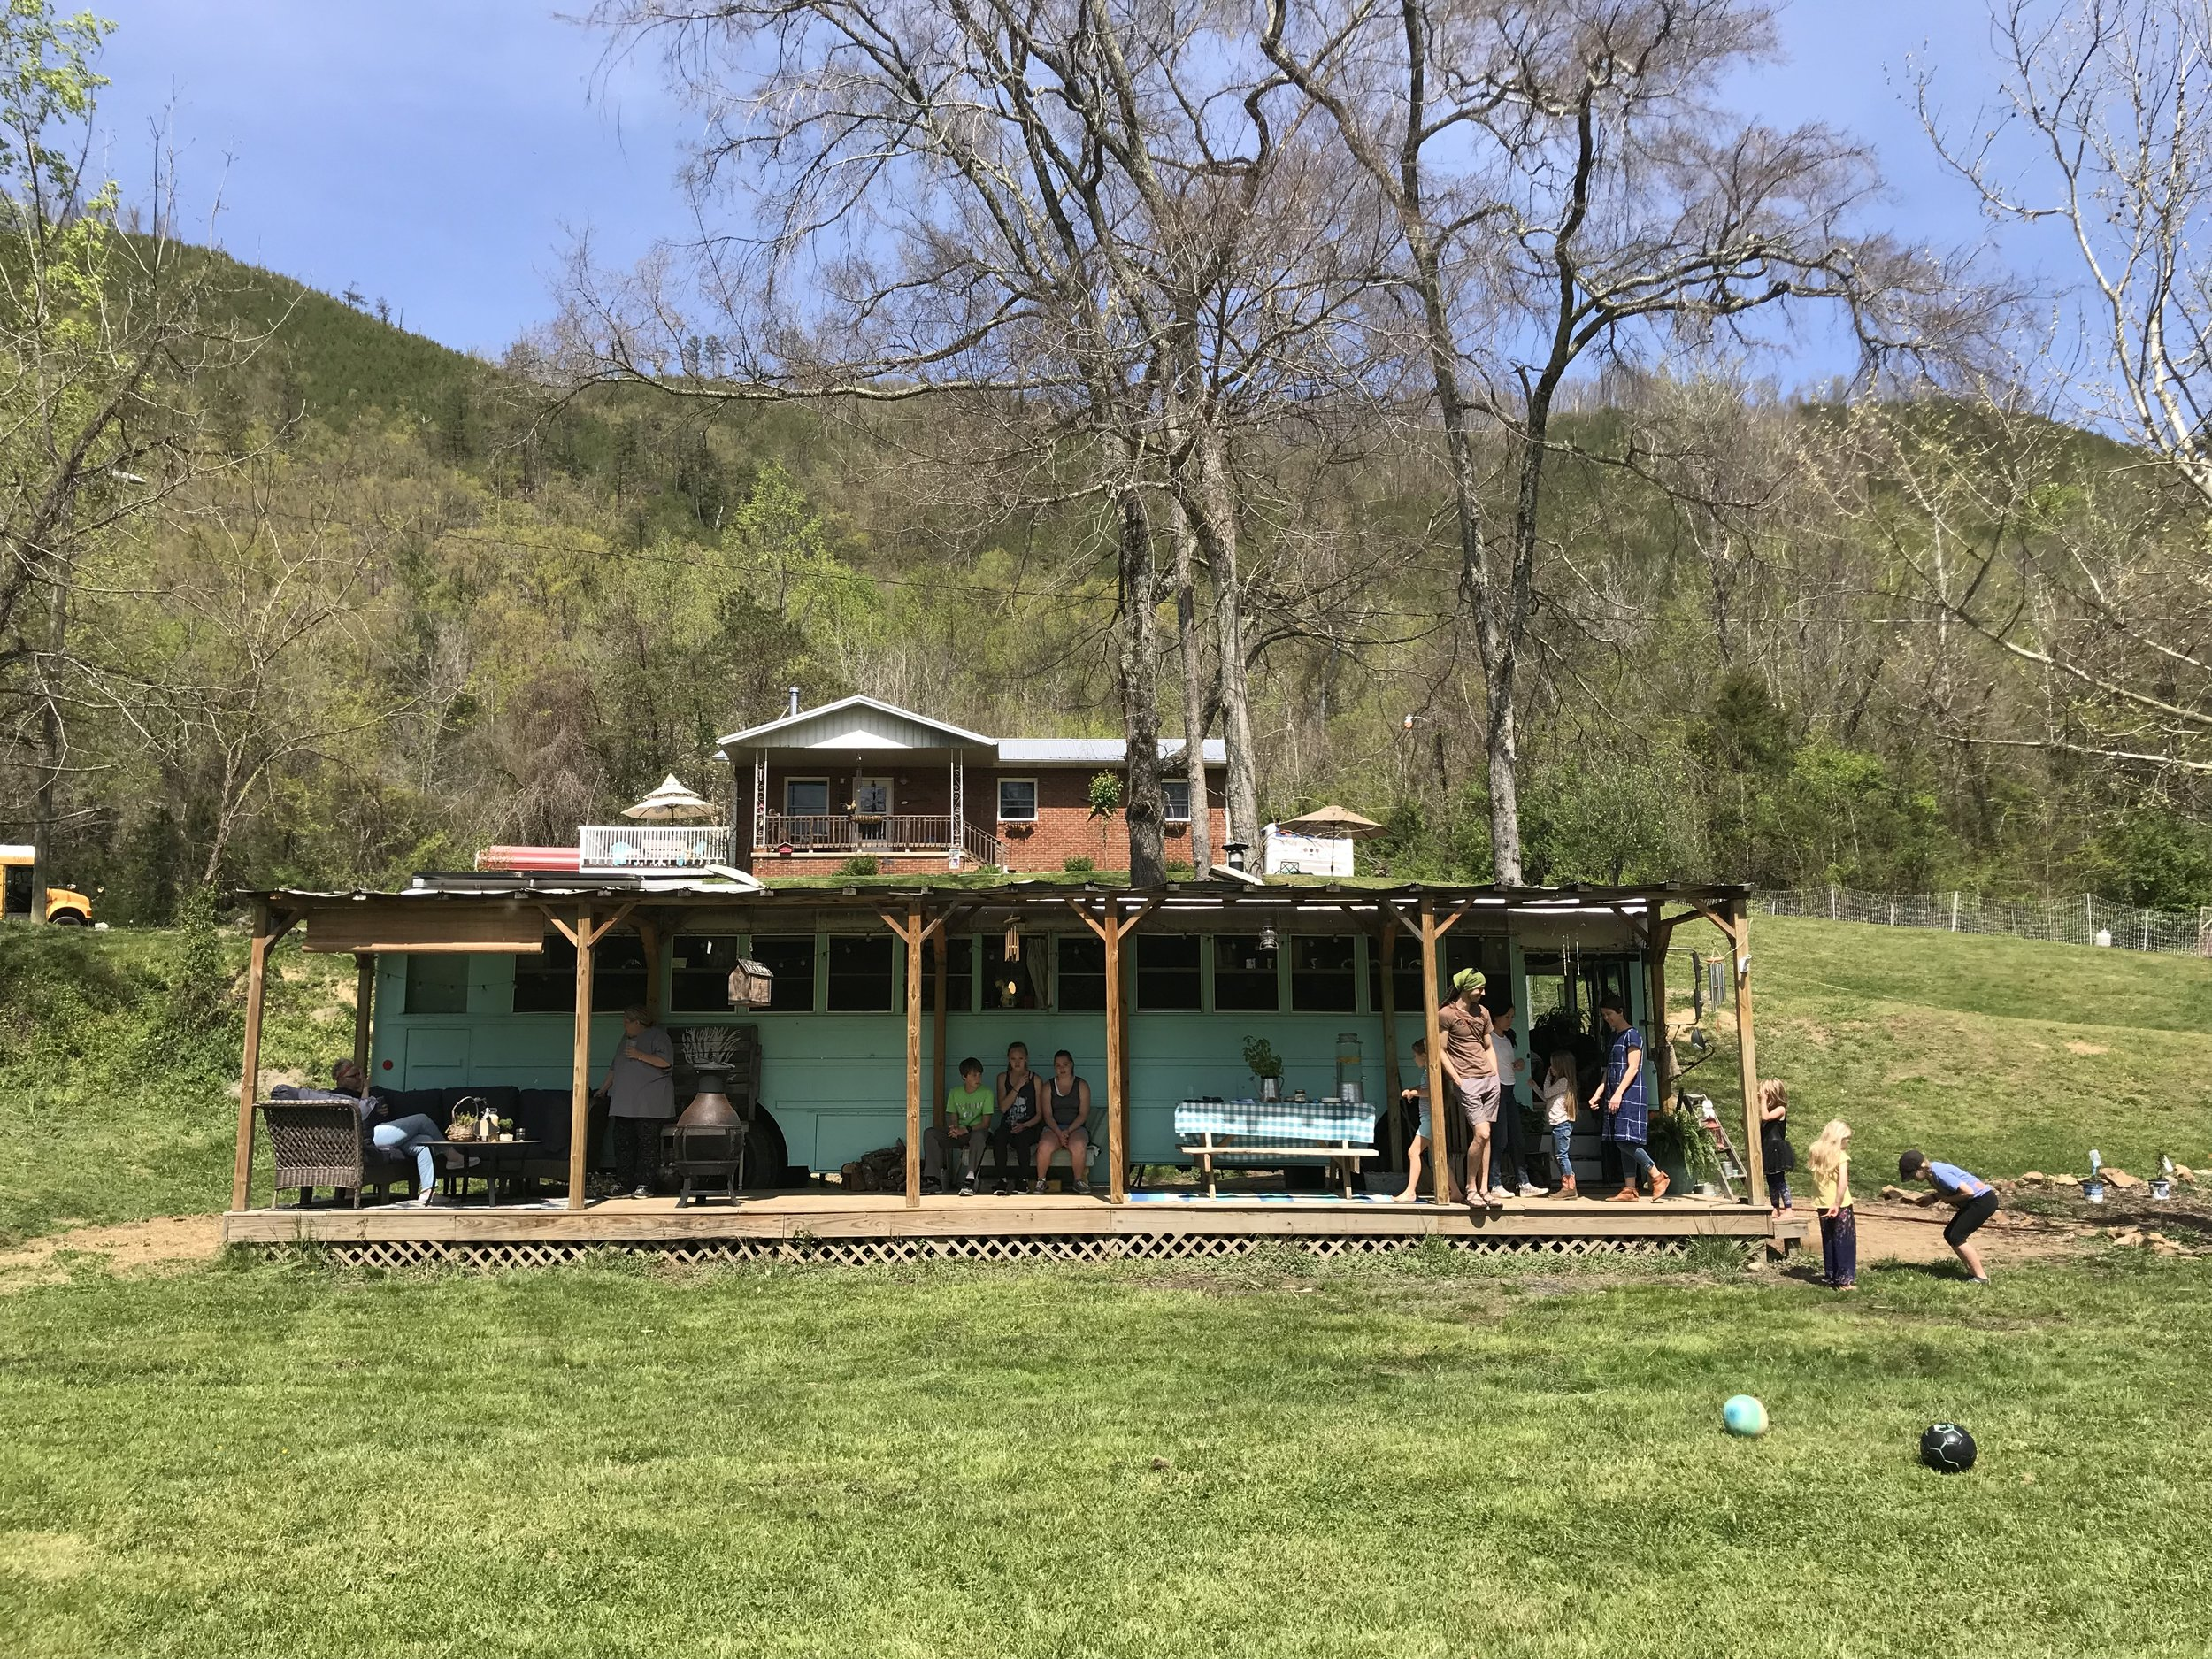 We visited Blue Ridge Conversions in Hot Springs, NC!